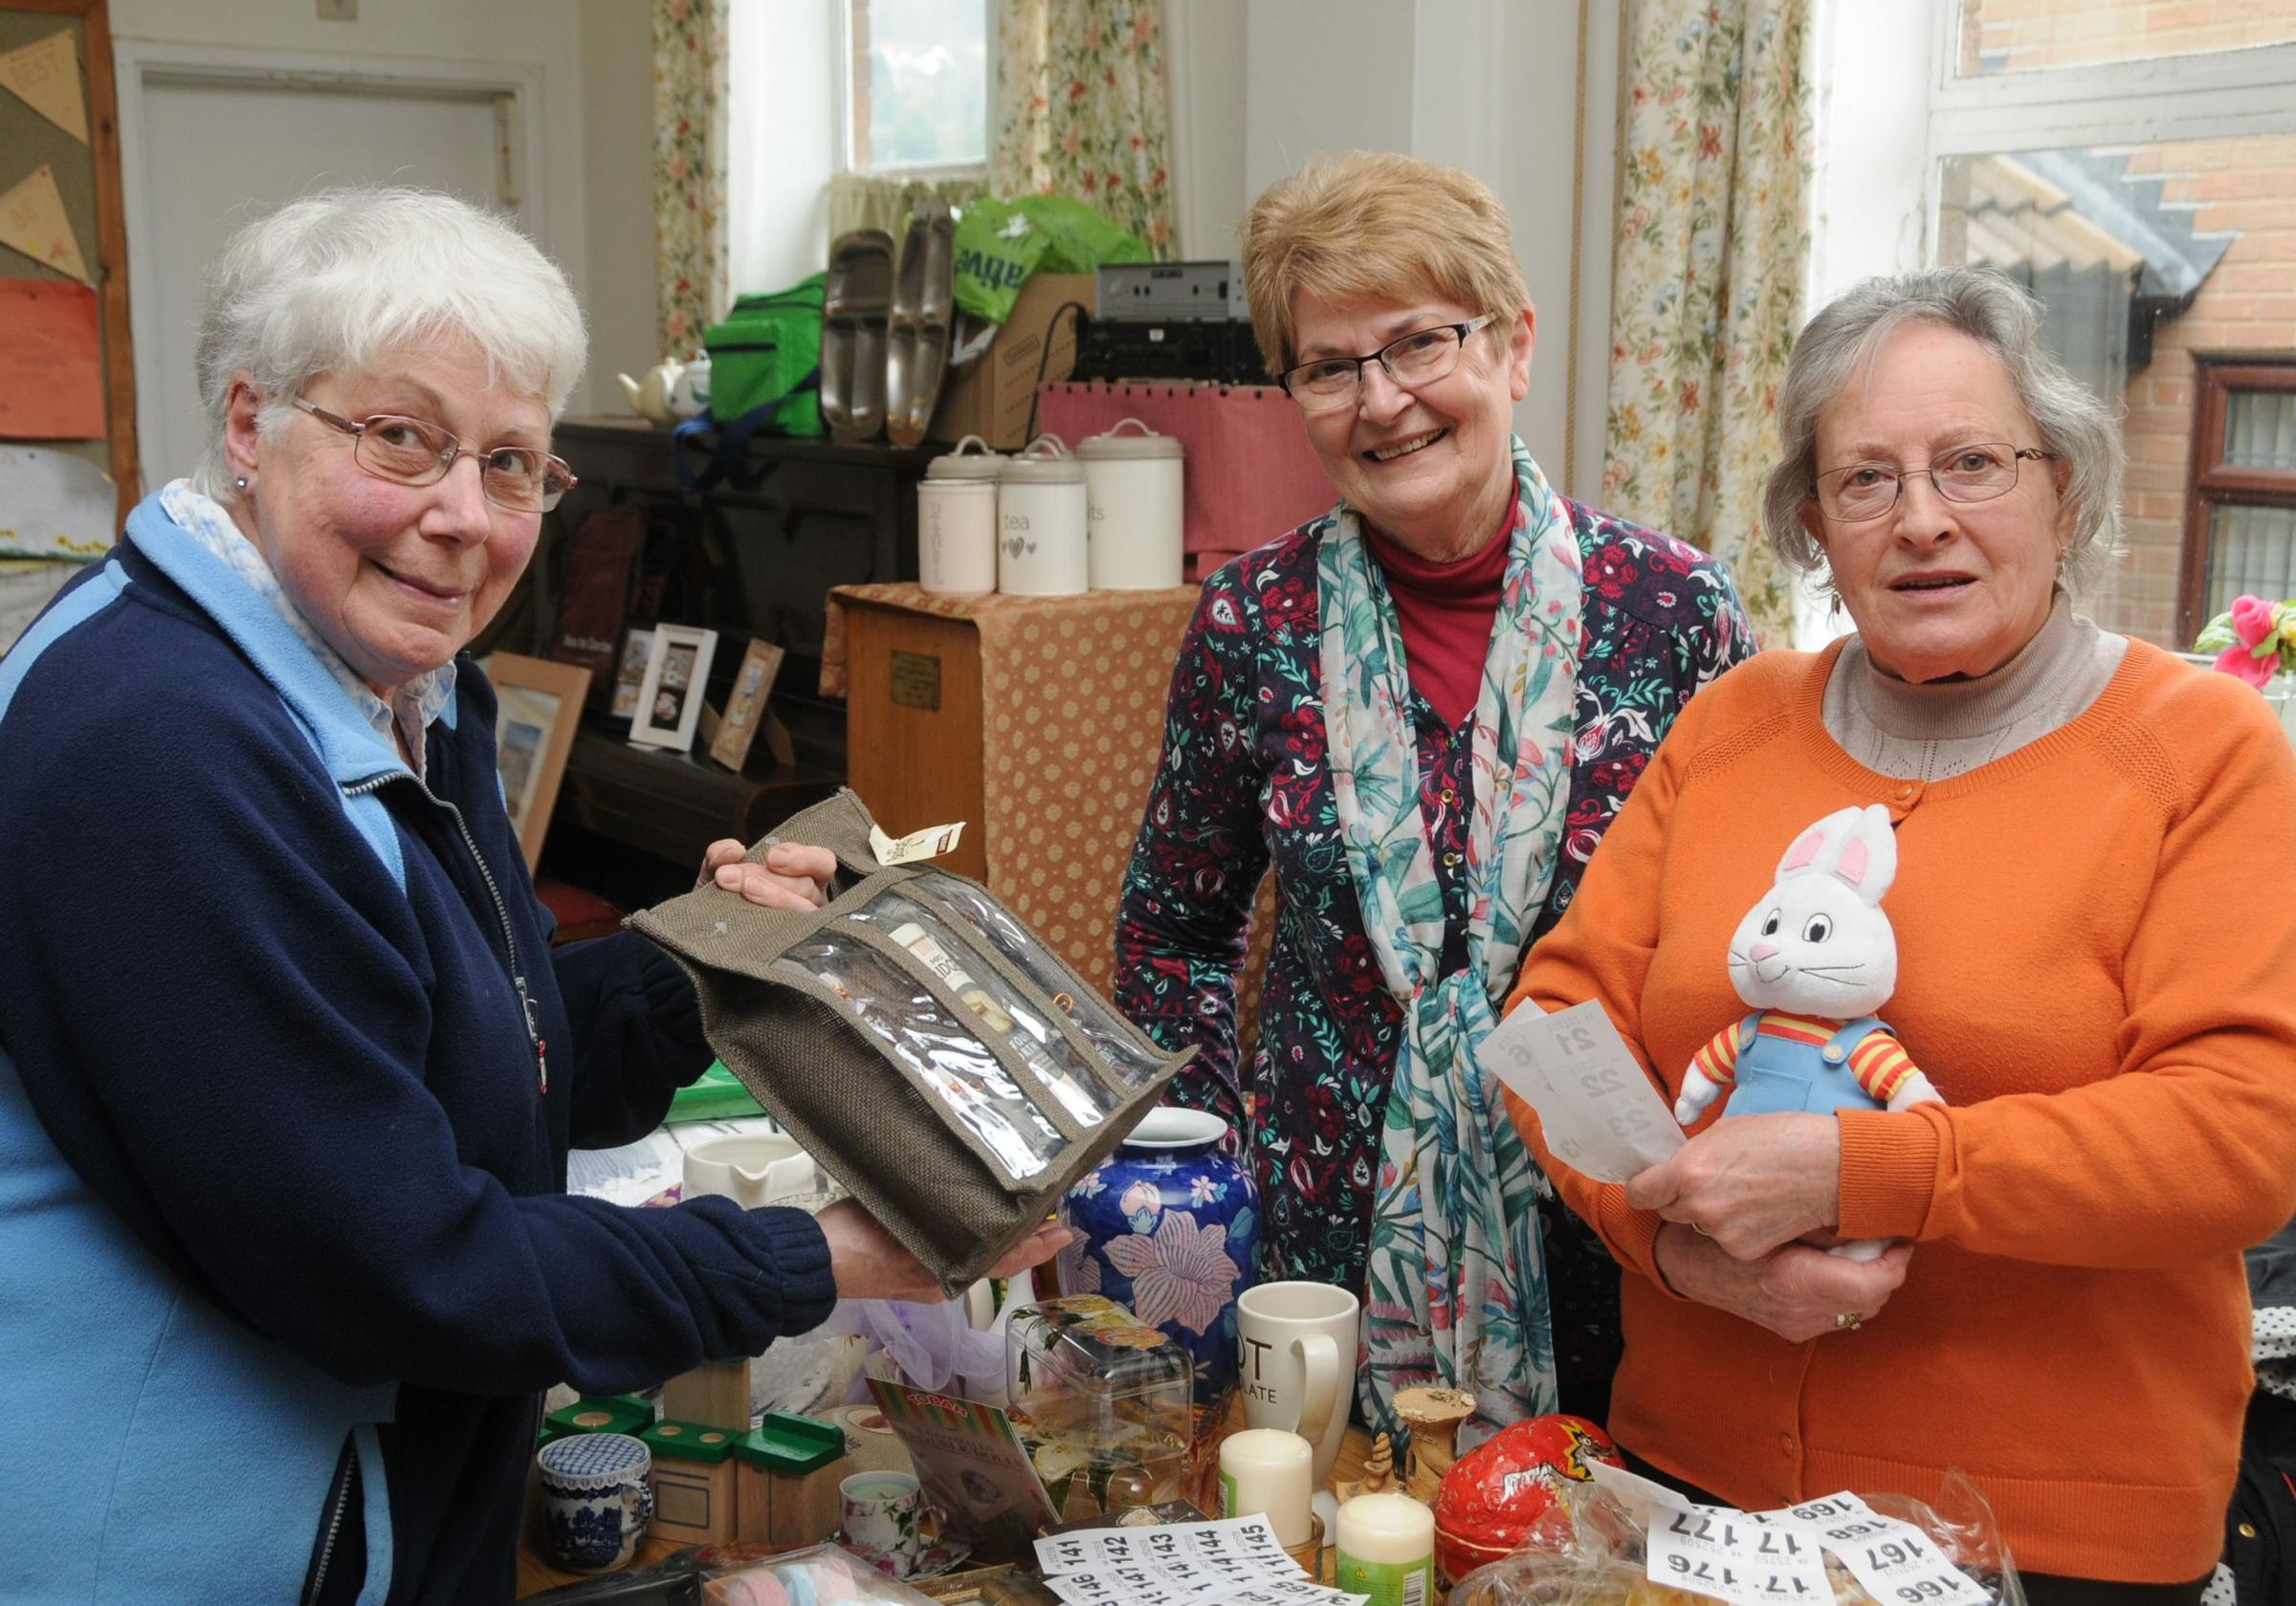 Reverend Hazel Ratcliffe shows Linda Roberts and Jan Edwards the raffle prize she has won.